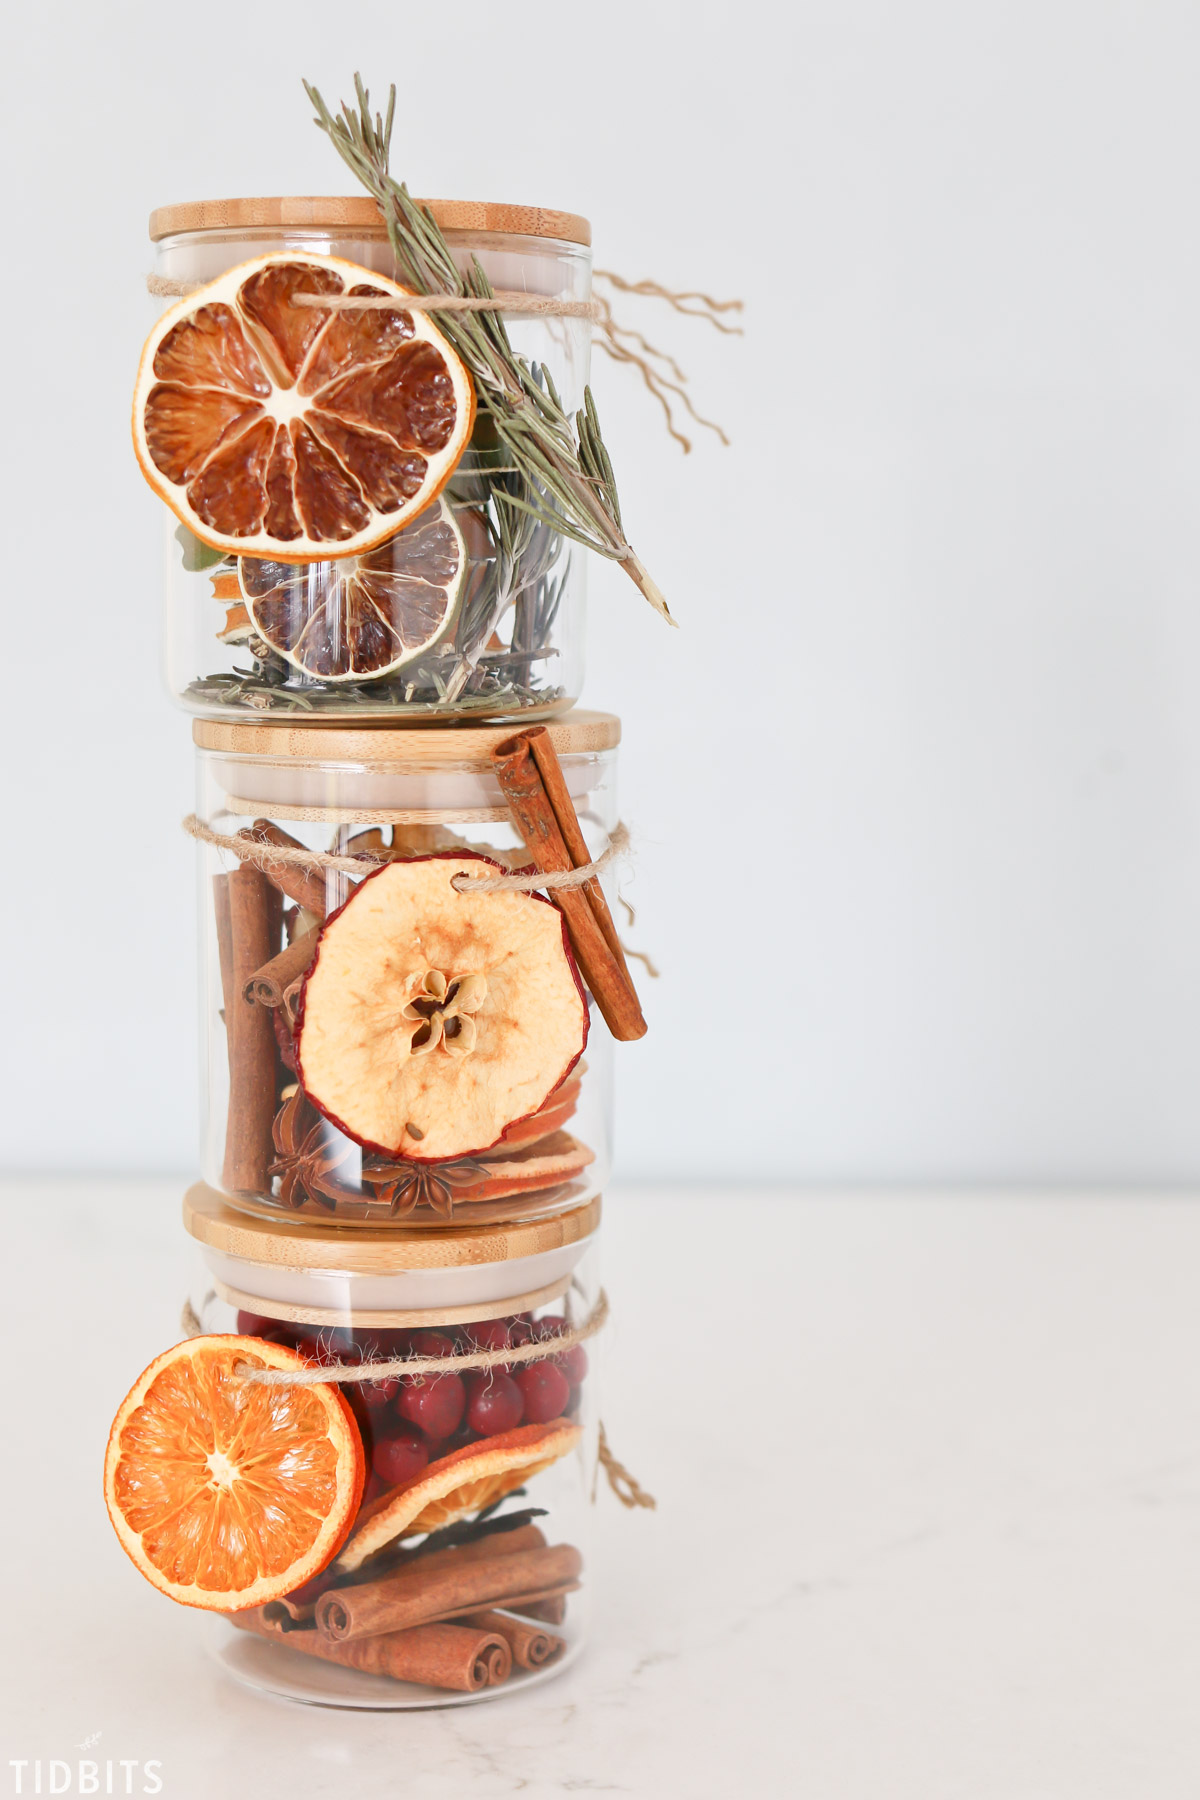 Homemade dried stovetop potpourri